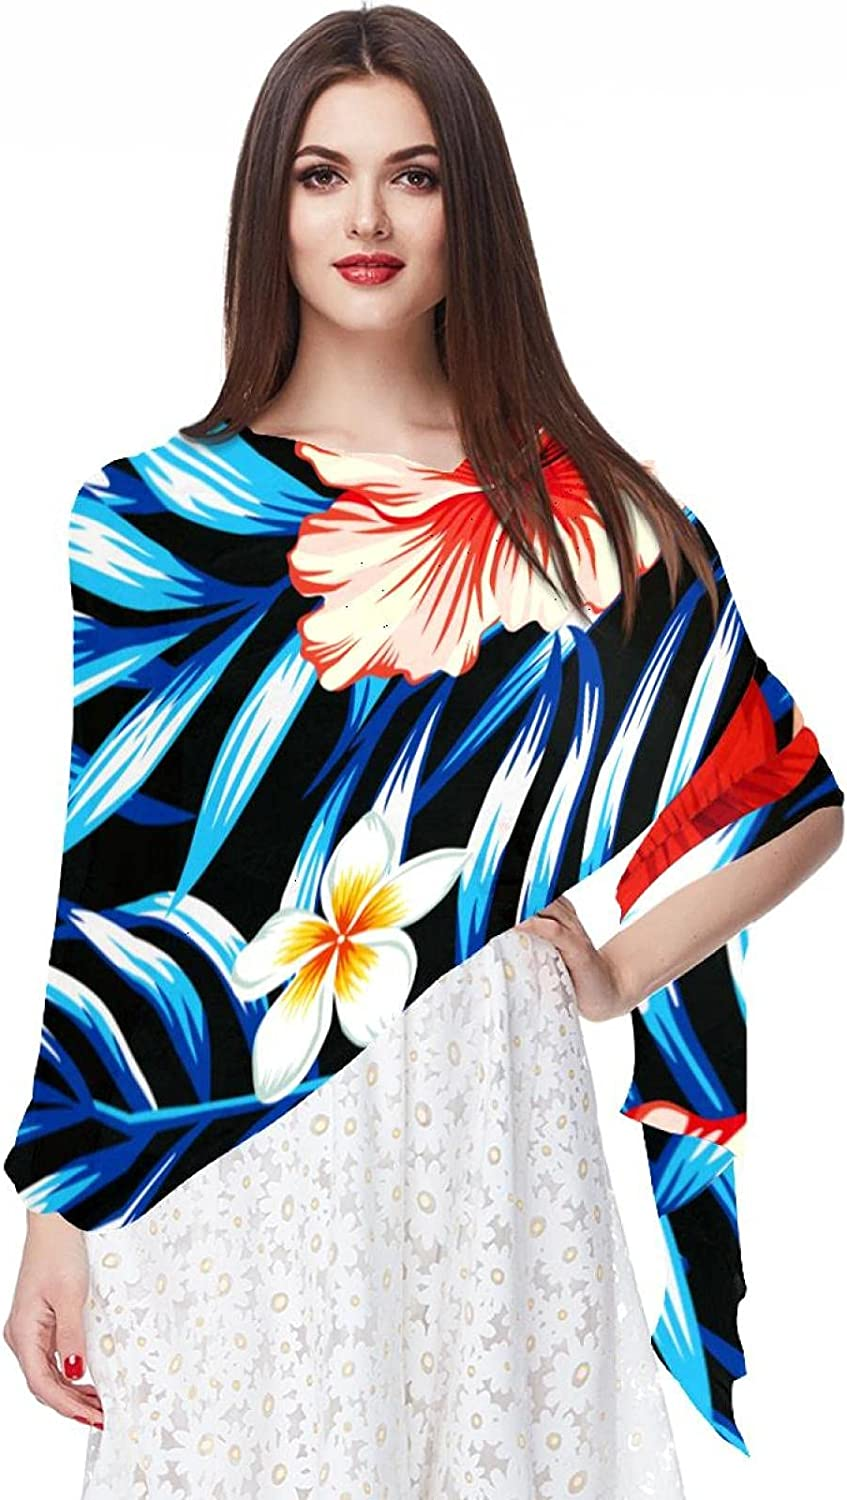 Tropical Red Floral Leaf Flowers Women Soft Chiffon Pashmina Shawl Wrap Scarf for Bridesmaid Wedding Formal Party Evening Dress